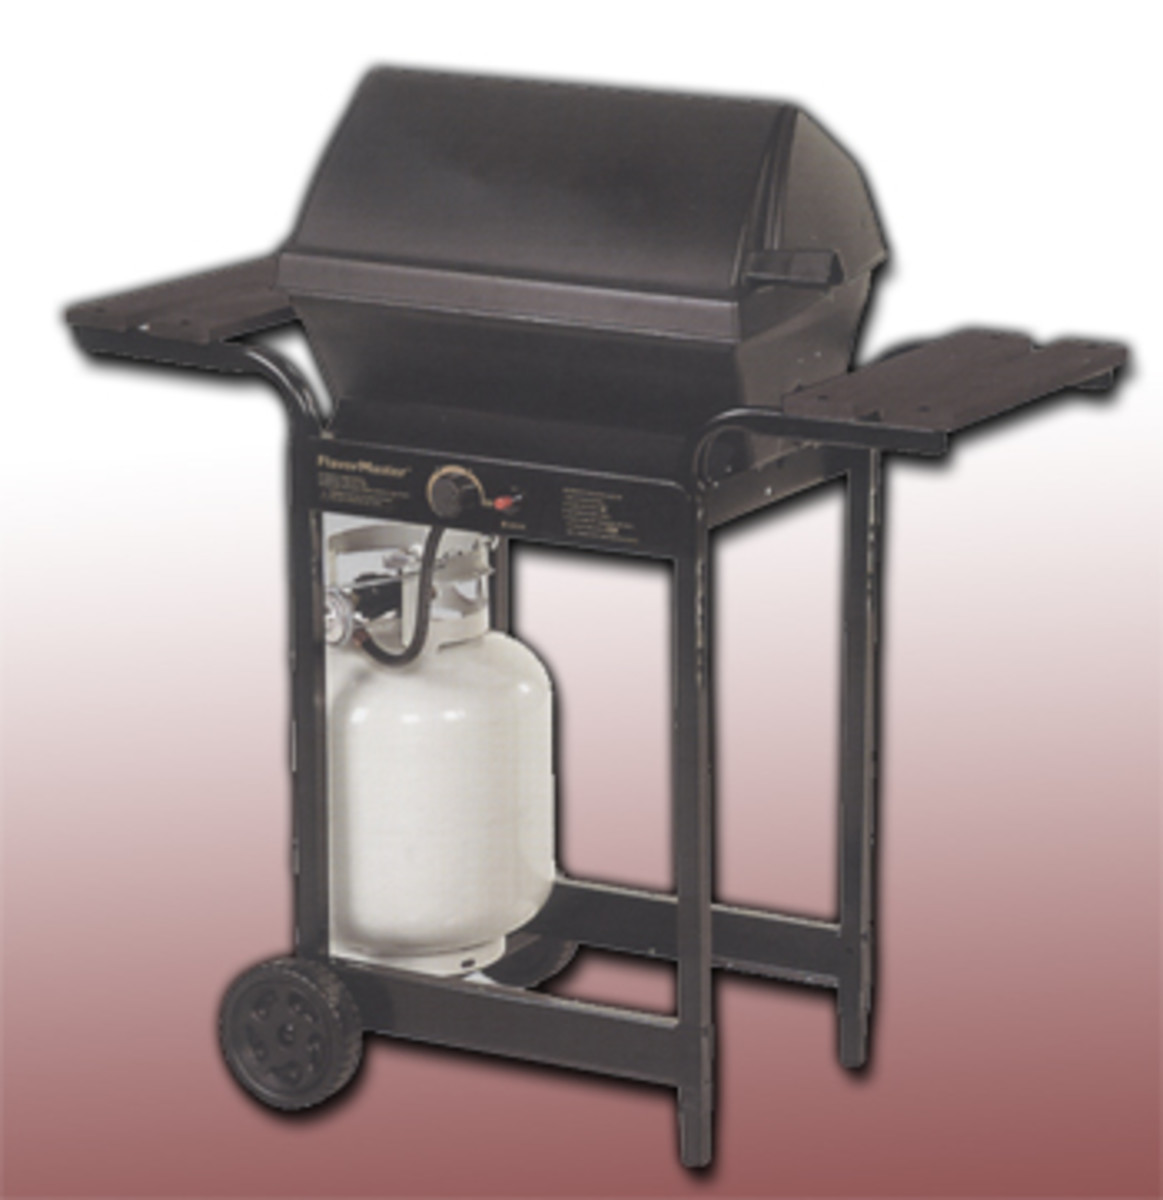 Char-broil flavormaster 4655300 with masterflame system uses ceramic briquettes to conduct heat